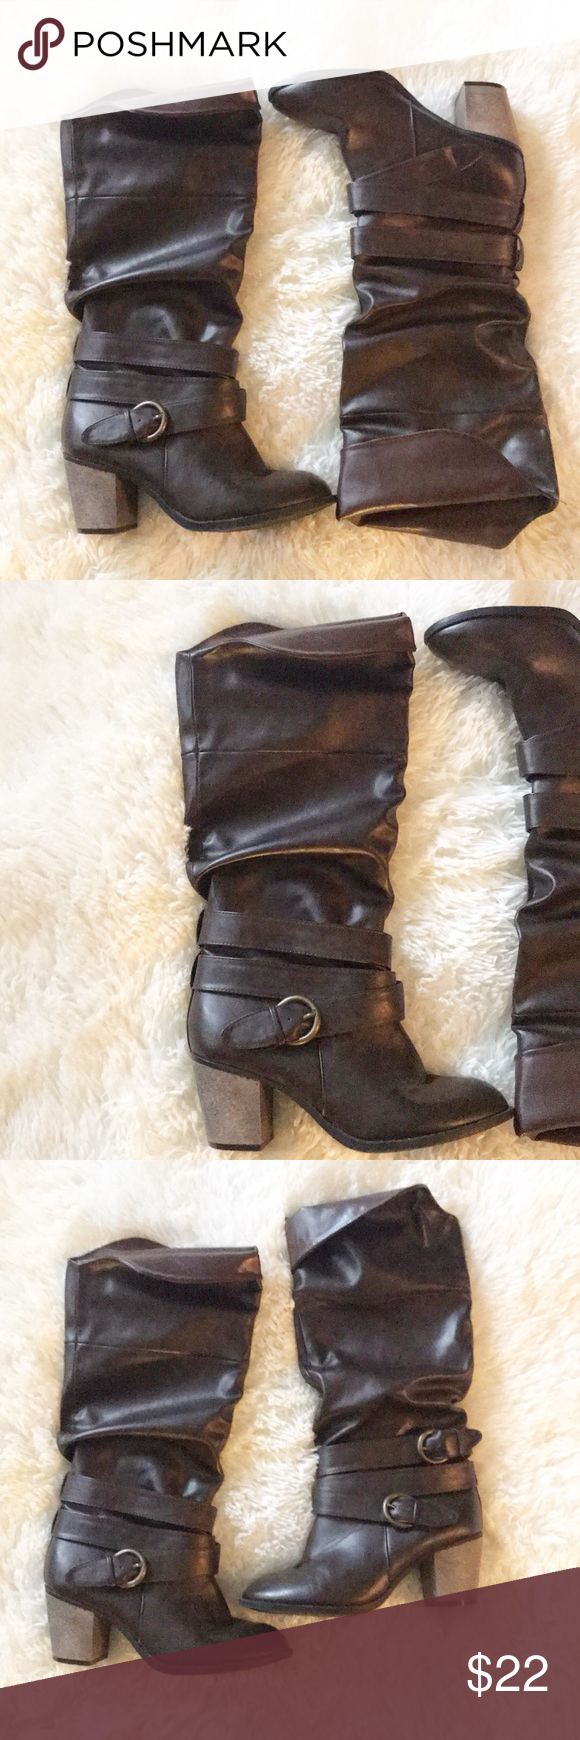 """bedbff49062 Leila Stone Boots Clarice Size 7.5 2 1 2"""" Heel Leila Stone Shoes Heeled  Boots"""